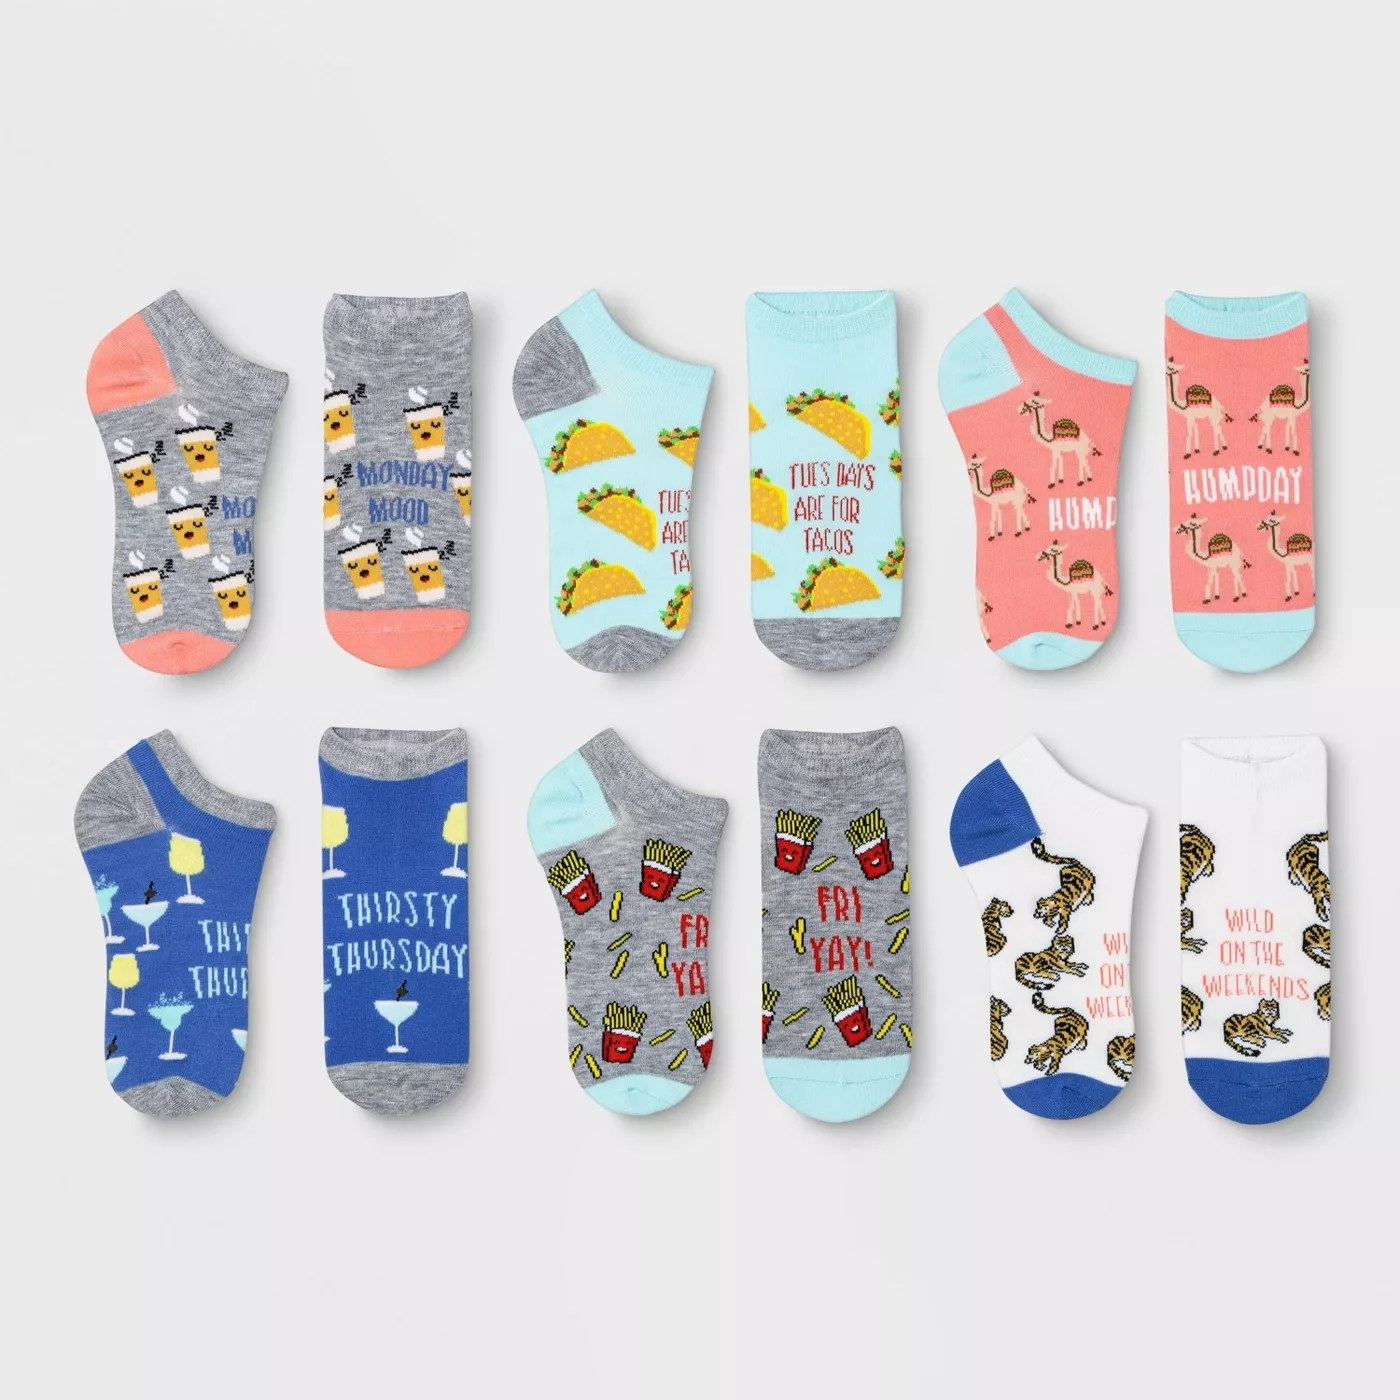 The set of colorful socks